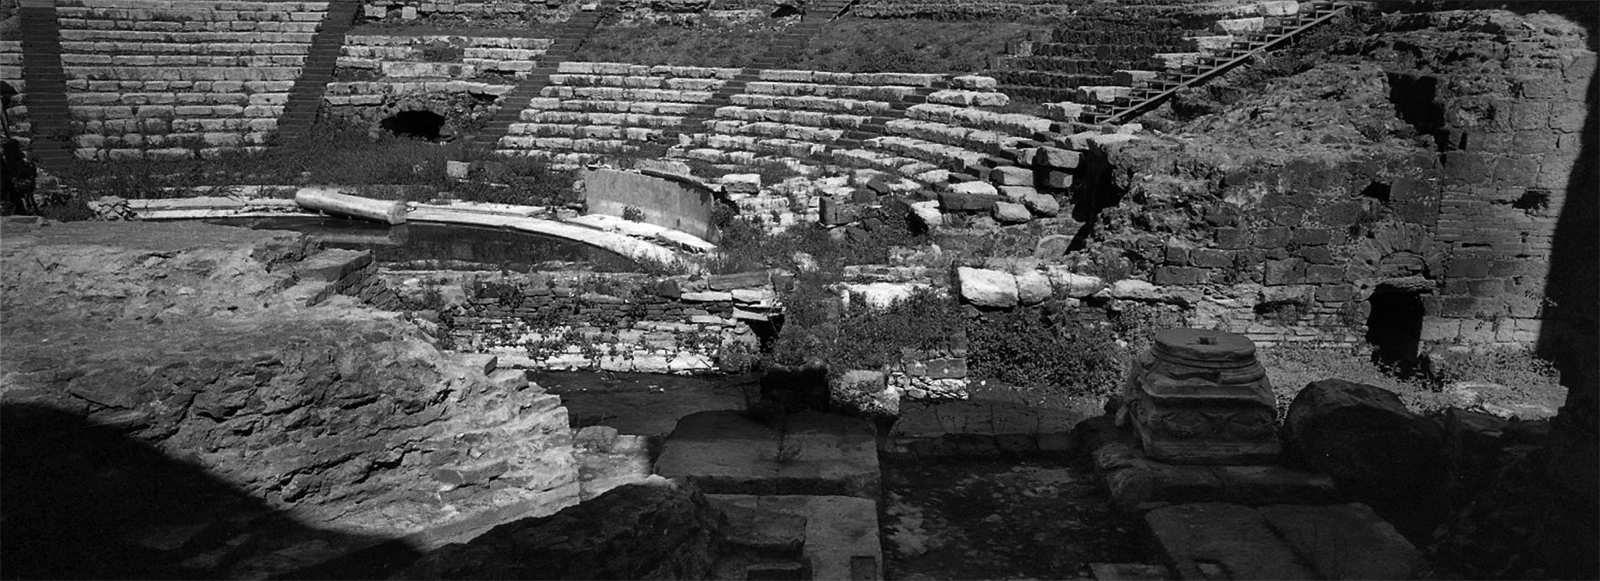 Art and Documentary Photography - Loading Archeologia_in_Sicilia___Fabio_Sgroi_053_.jpg